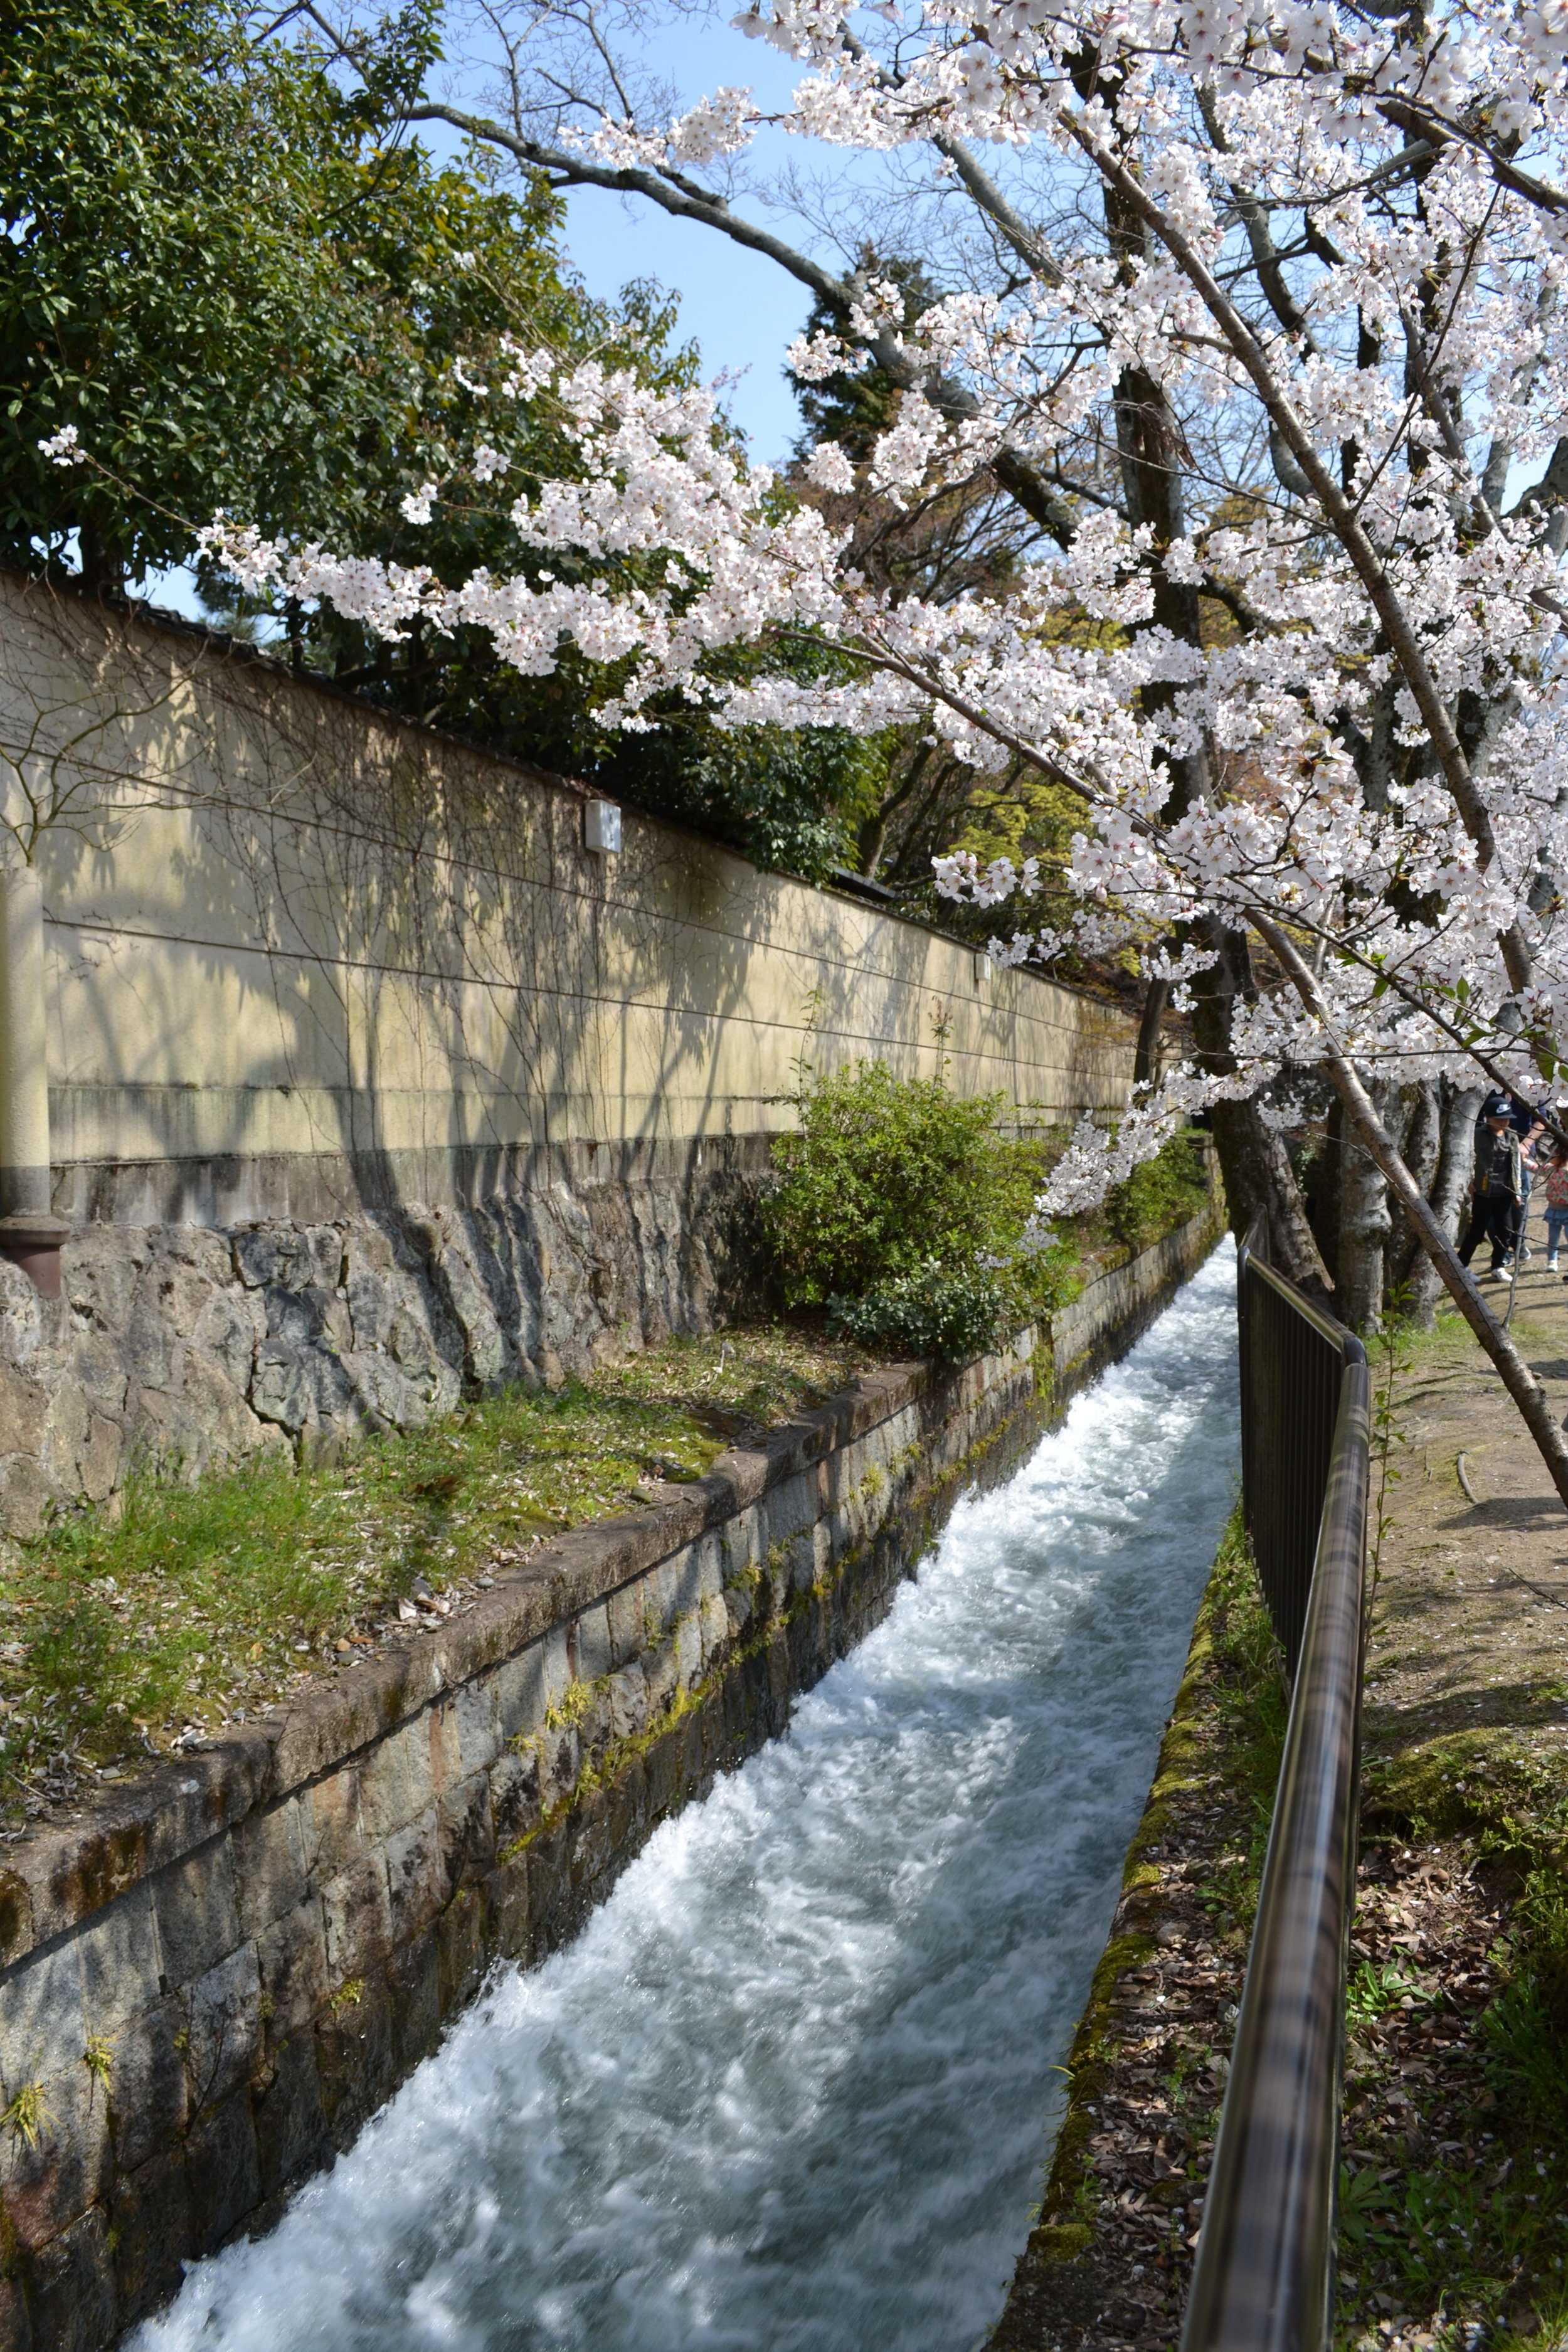 A view of the water rushing down with cherry blossoms at the top. I followed the water to the canal next.